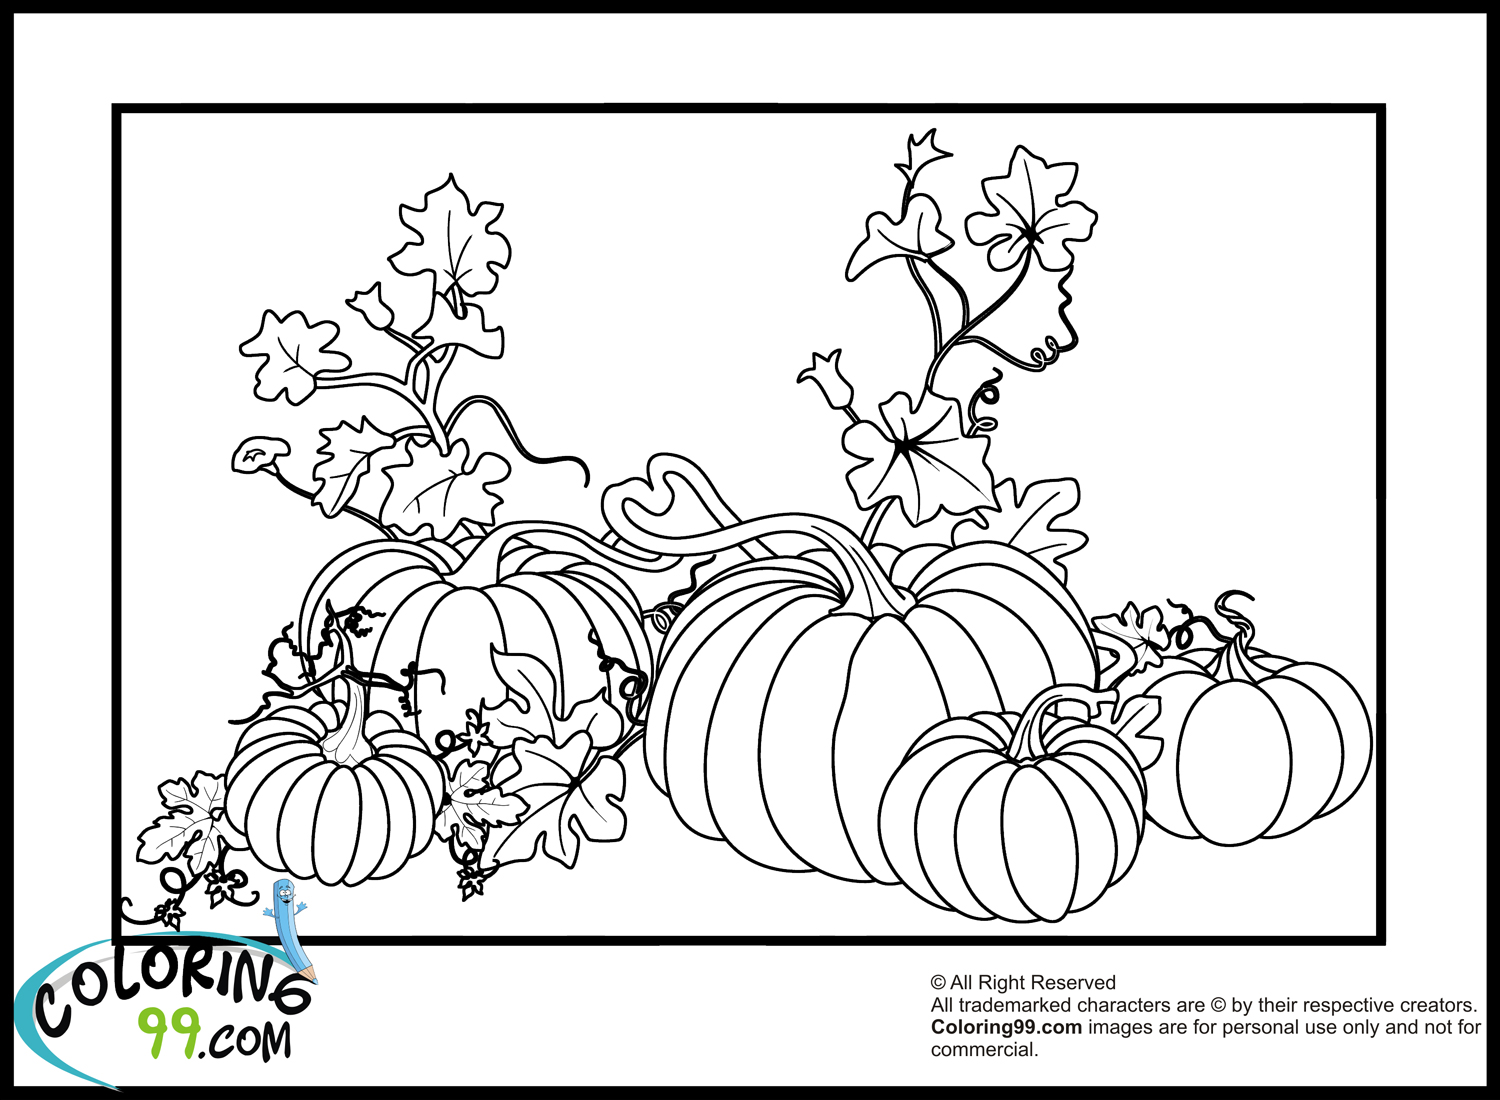 Pumpkin Coloring Pages | Team colors